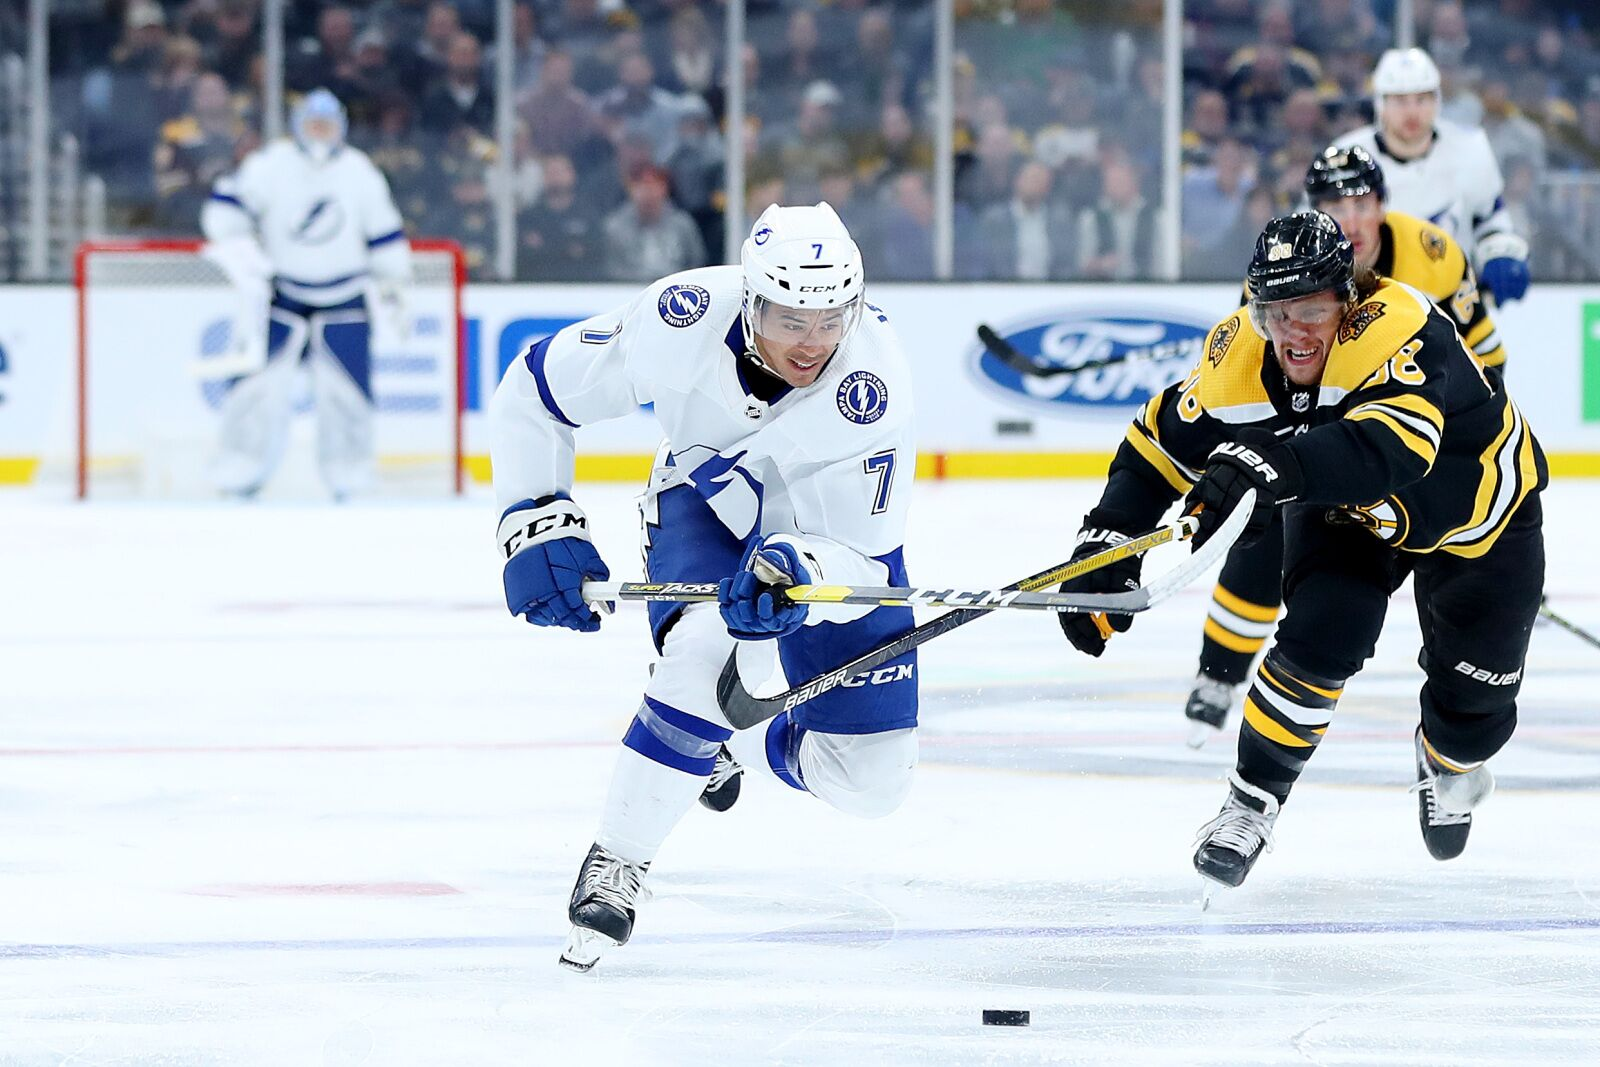 Boston Bruins: David Pastrnak the stand-out despite loss to Tampa